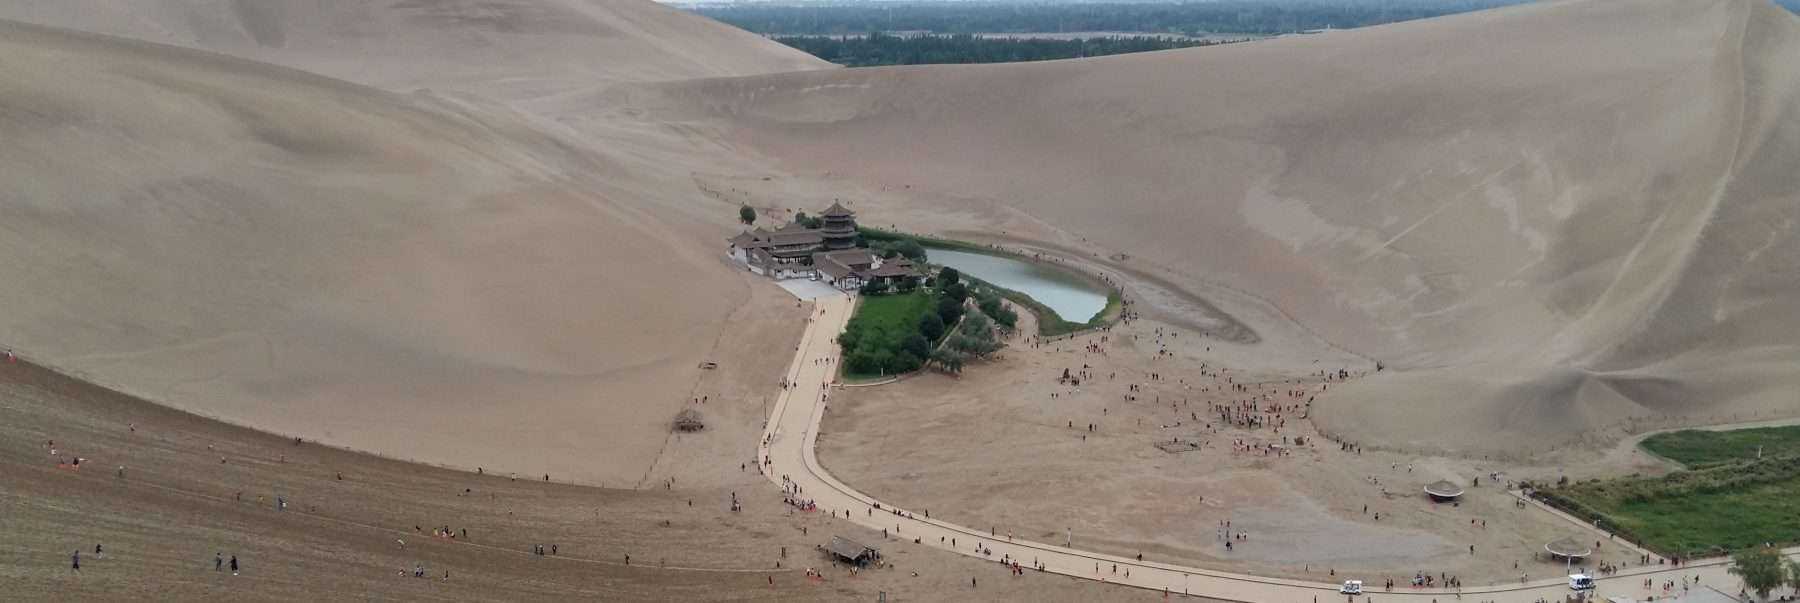 Crescent Lake, Dunhuang, China